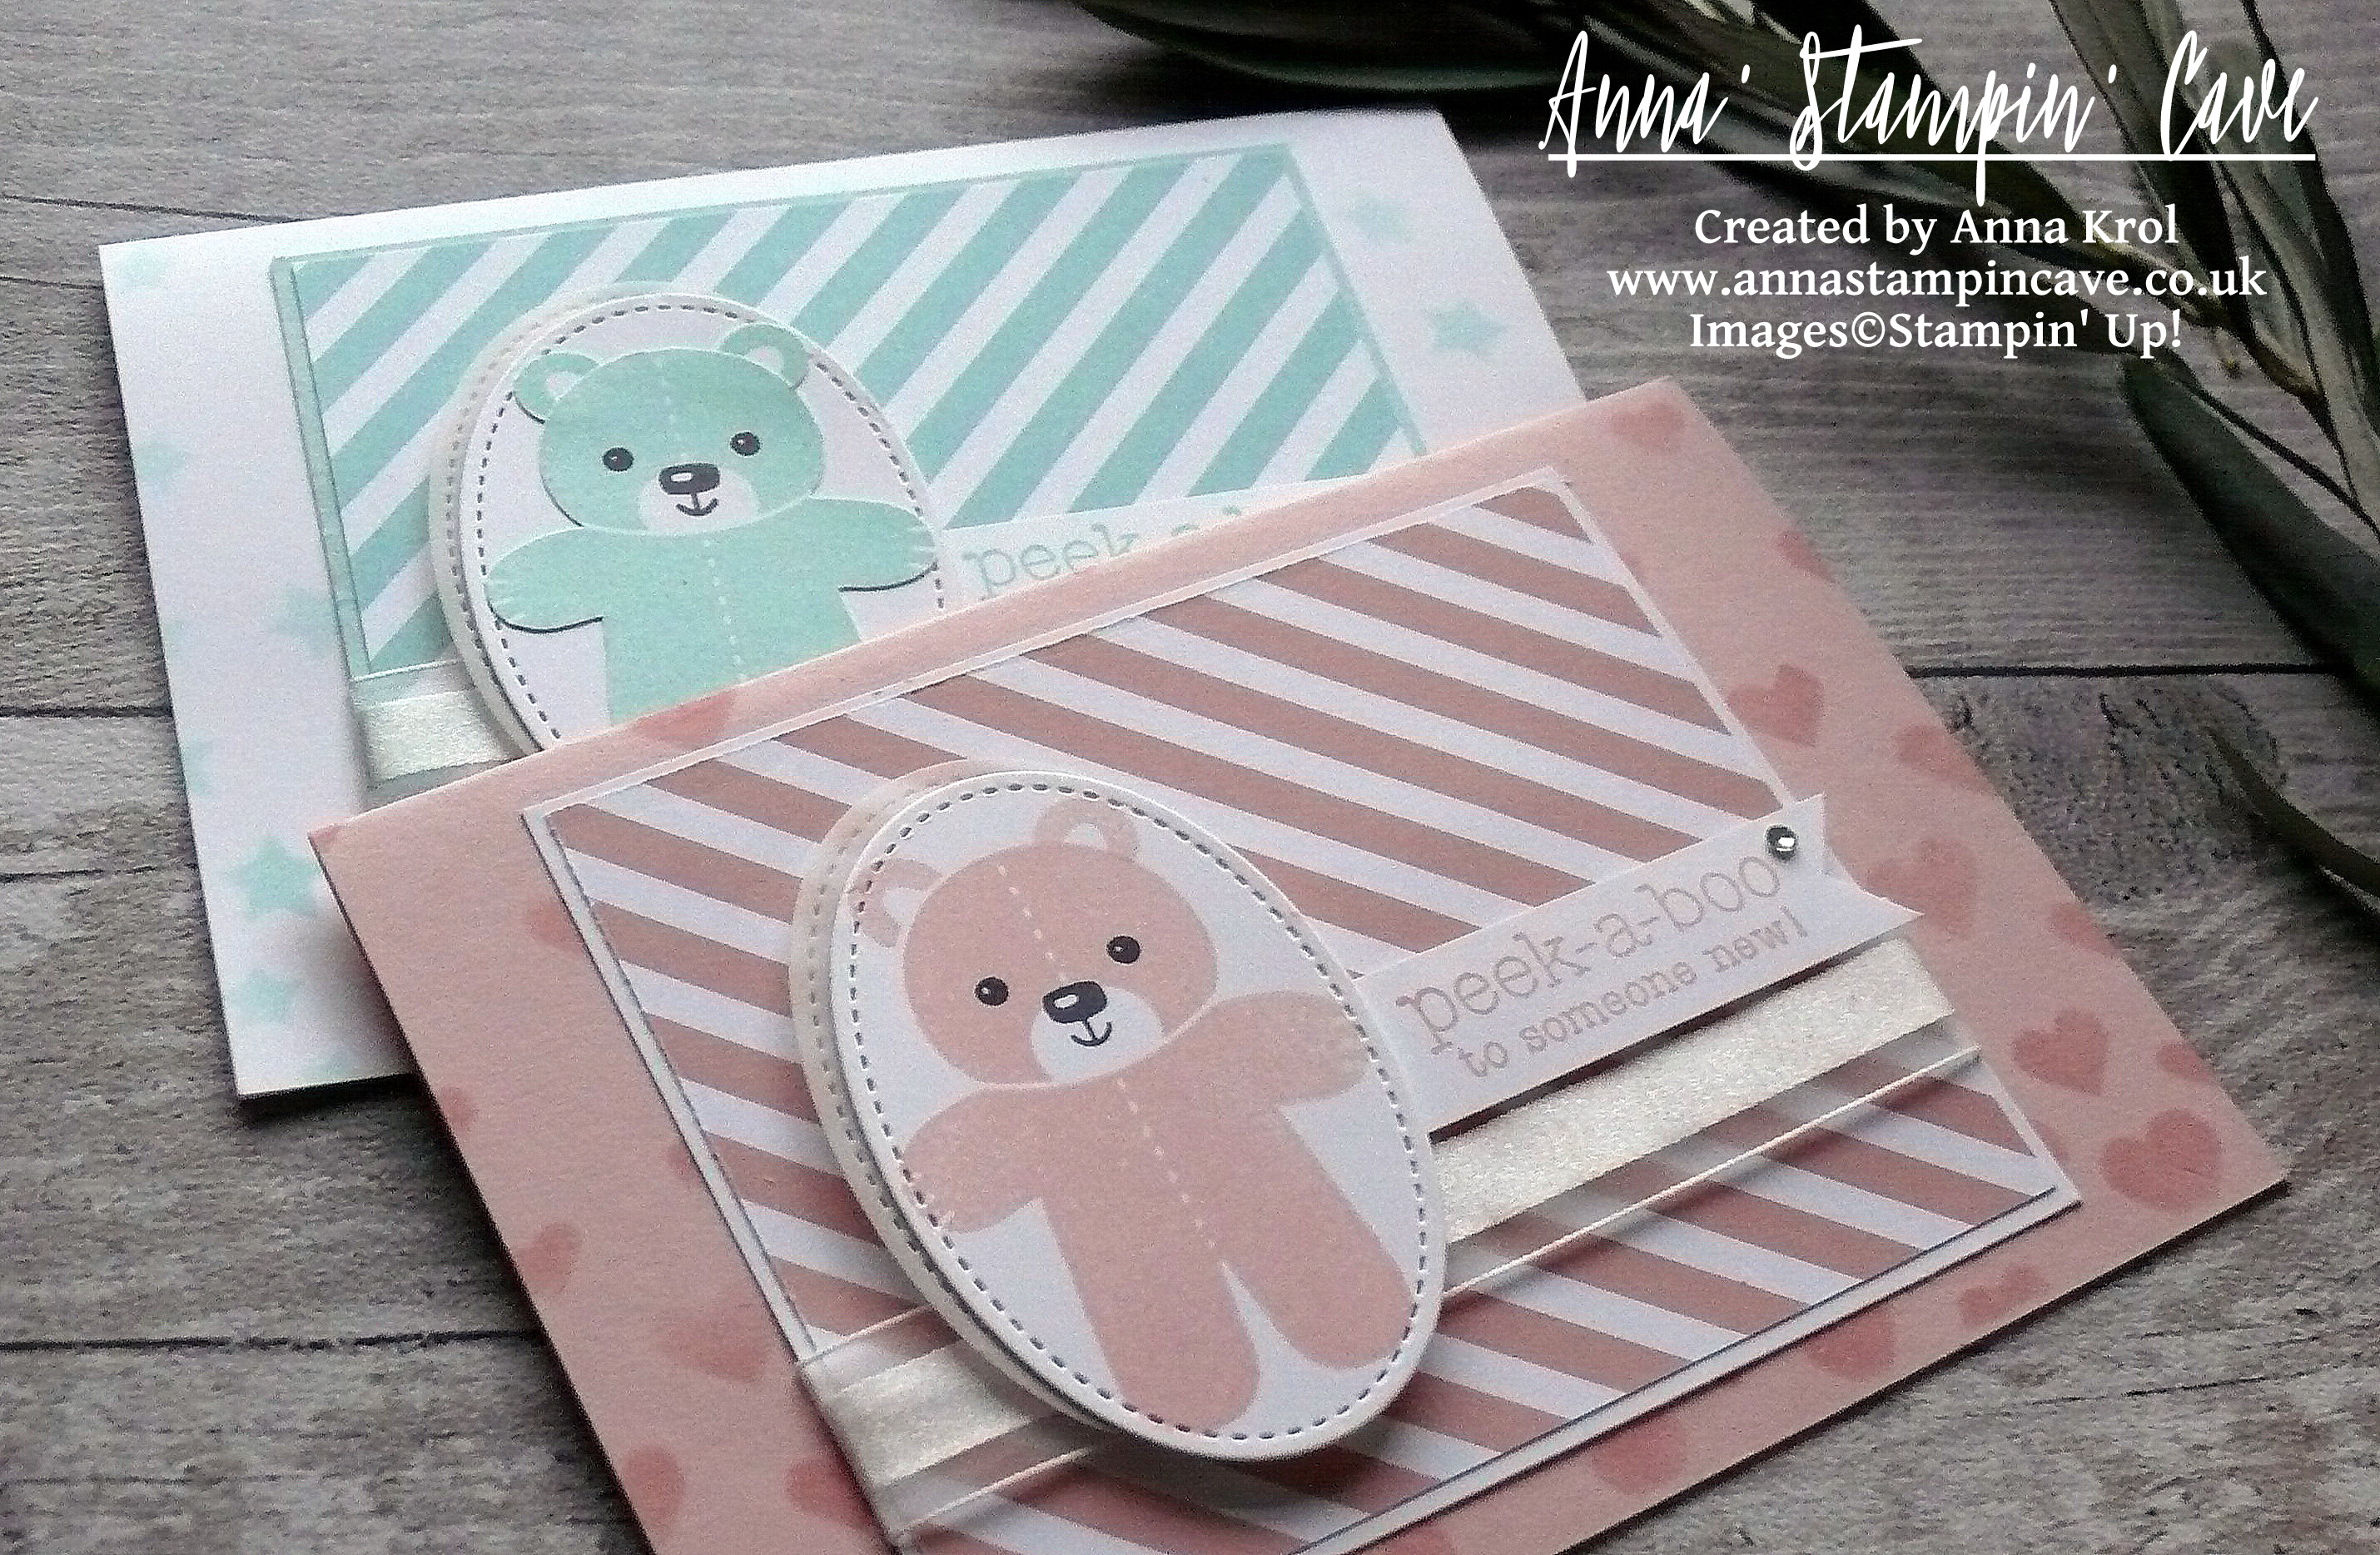 anna-stampin-cave-cookie-cutter-peek-a-boo-baby-cards